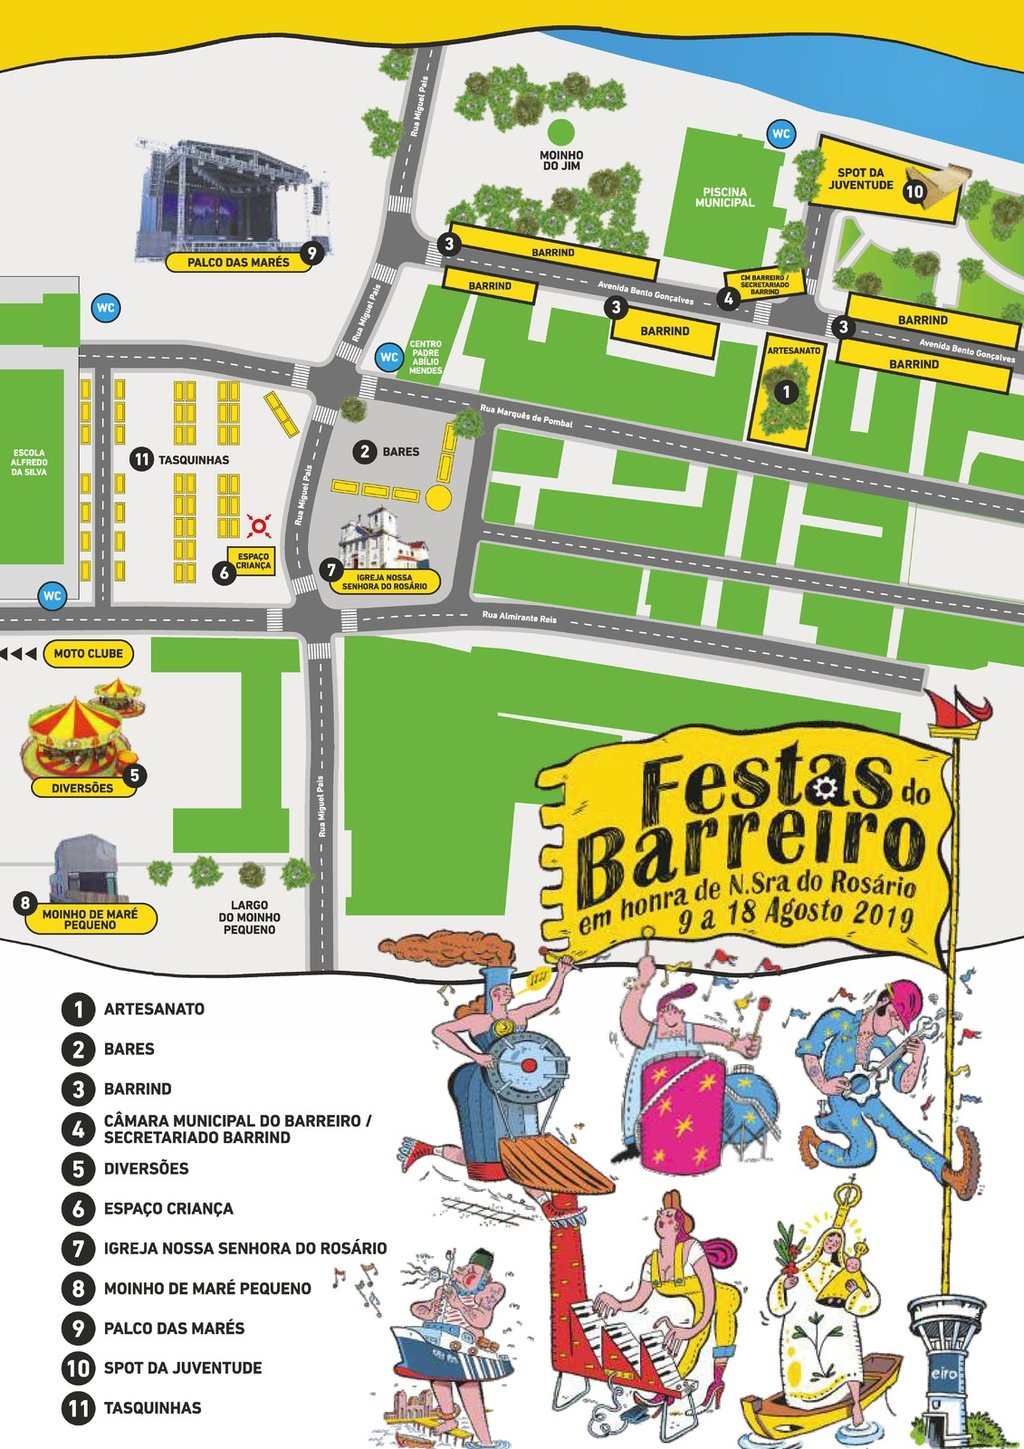 Programa Festas do Barreiro2019 A4_final_Implantacai